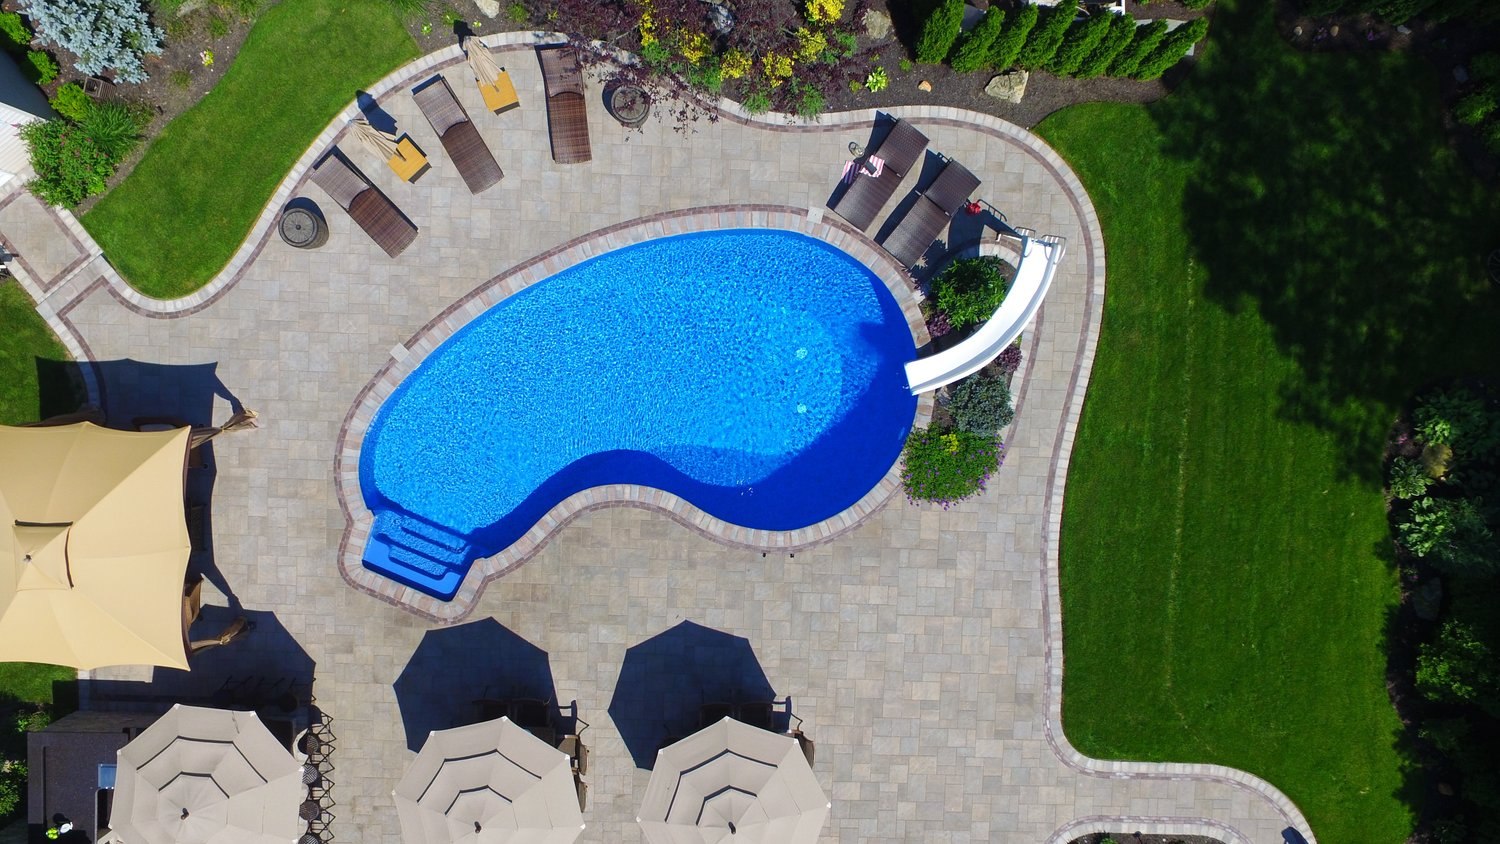 3 Designs For A Beach Style Pool Patio For Your NY Backyard